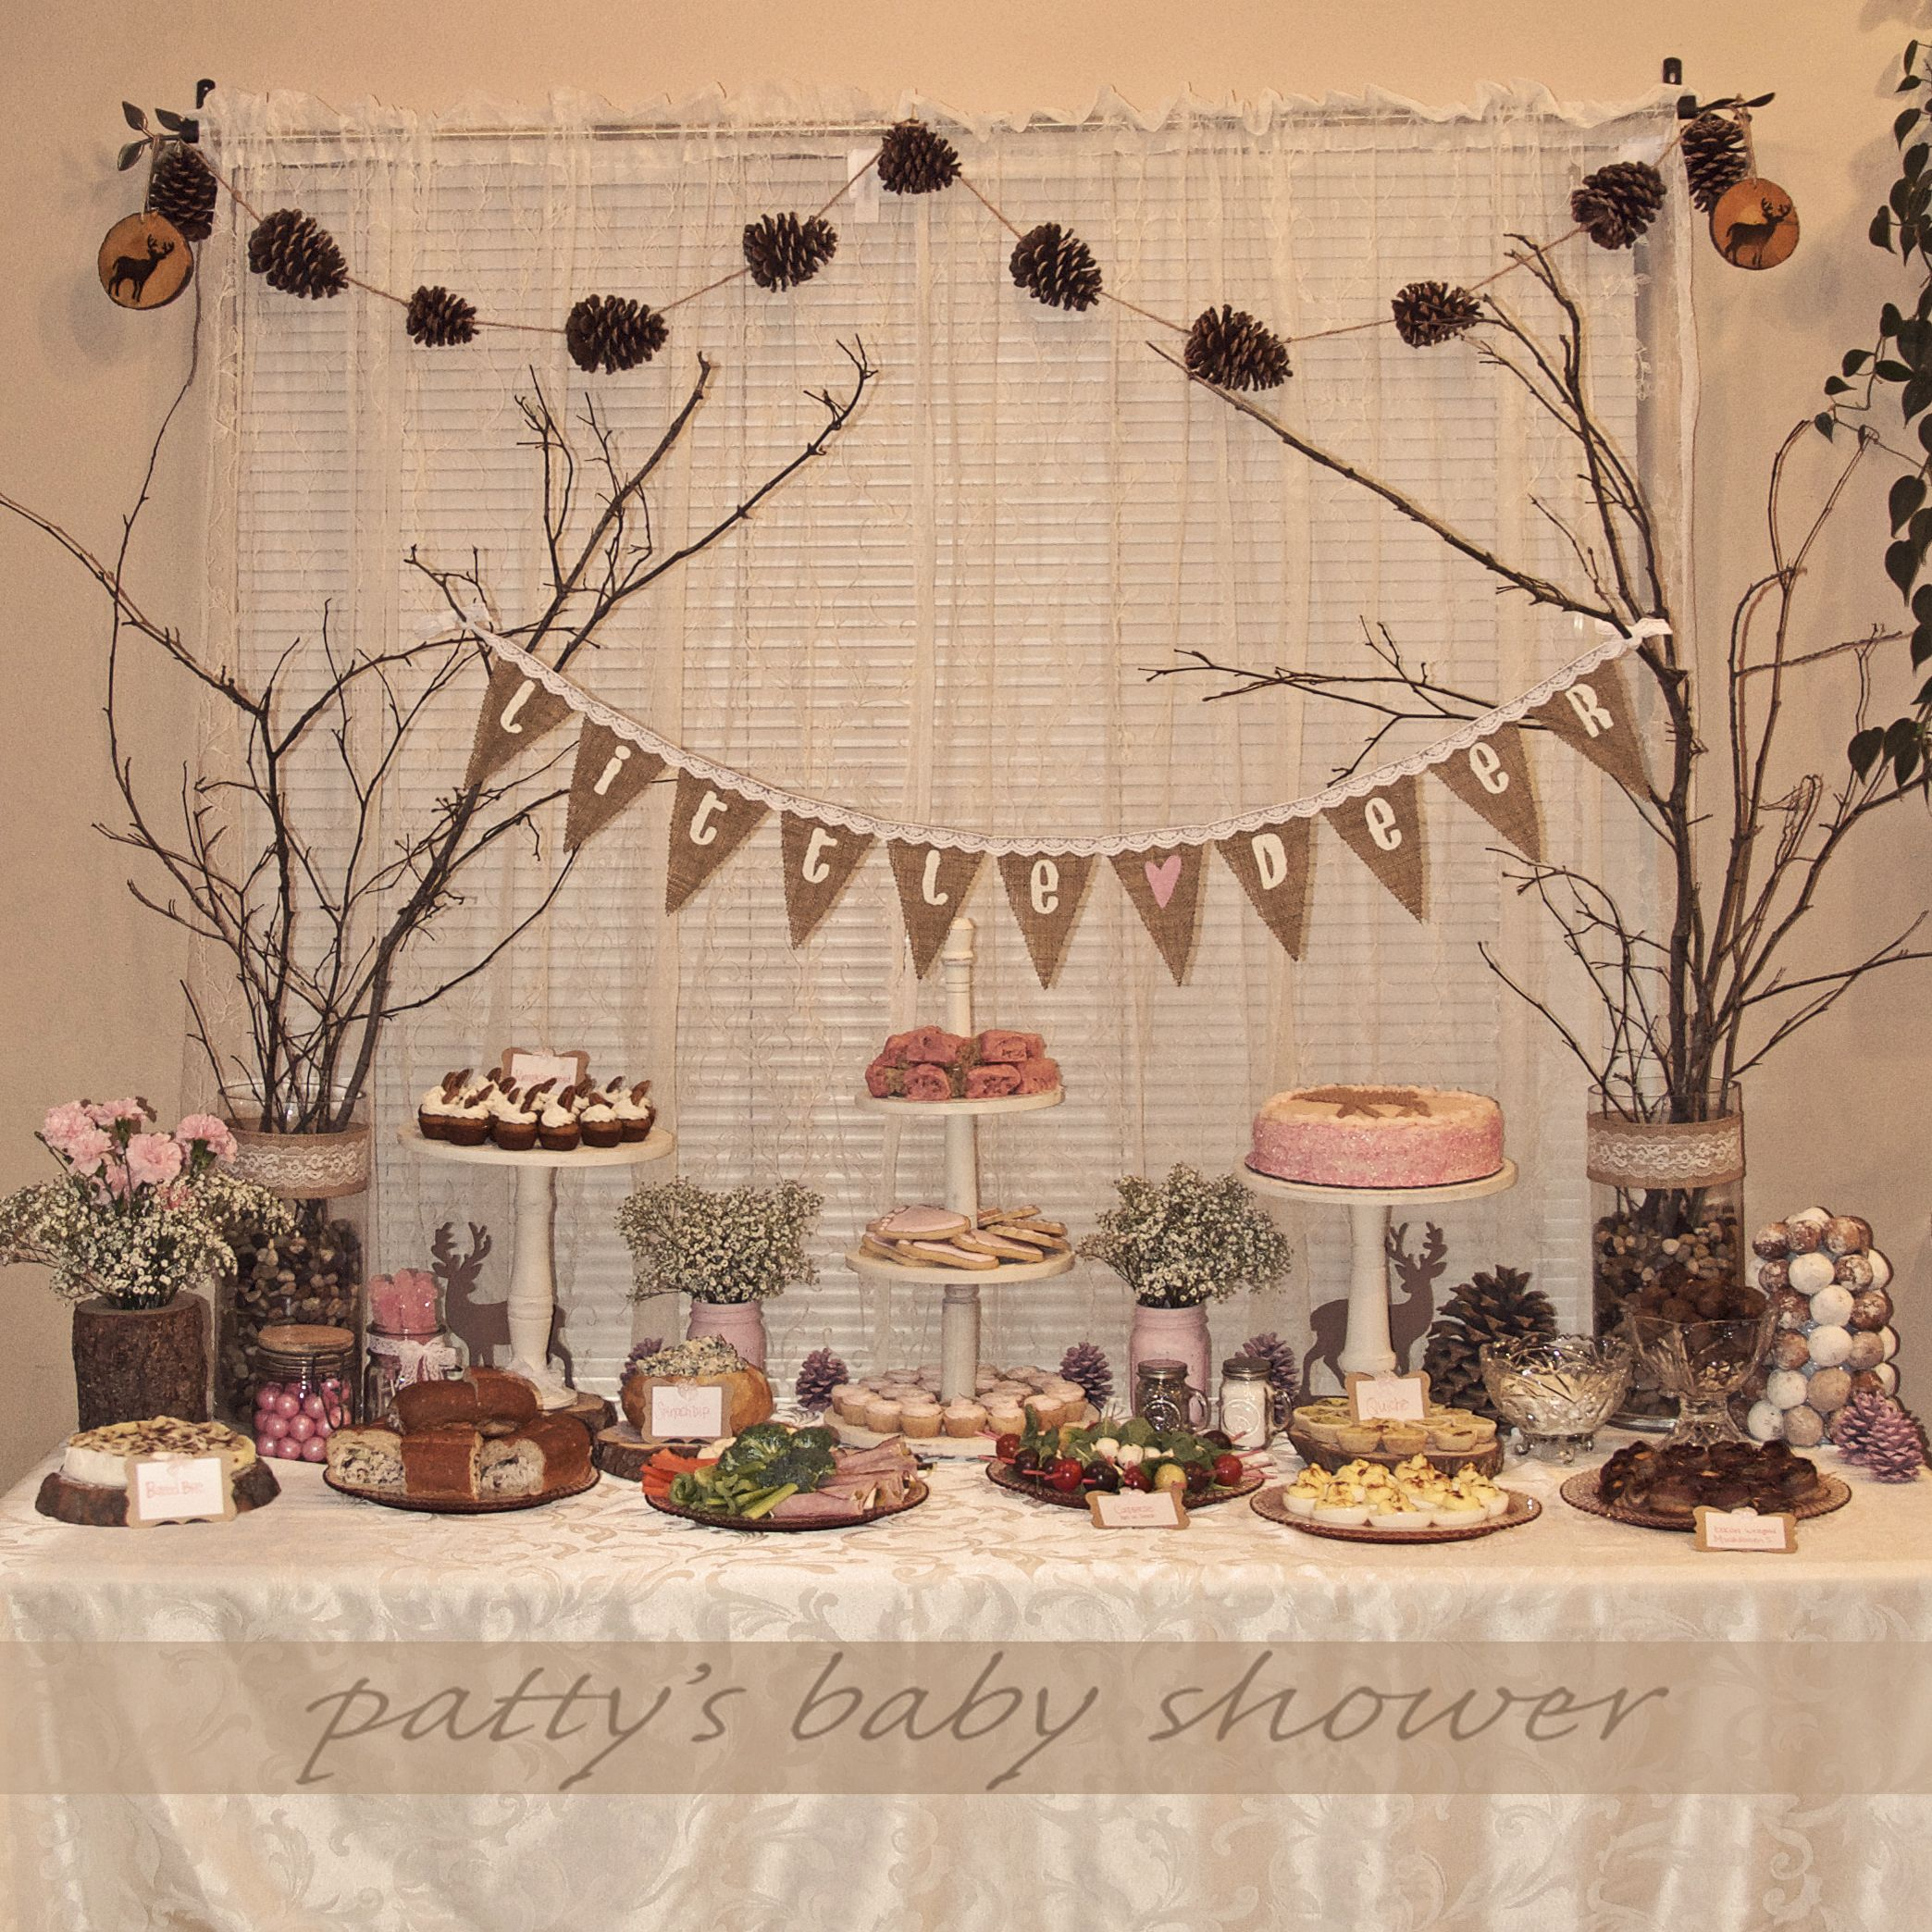 23 Imaginative Baby Shower Themes for Baby Girls